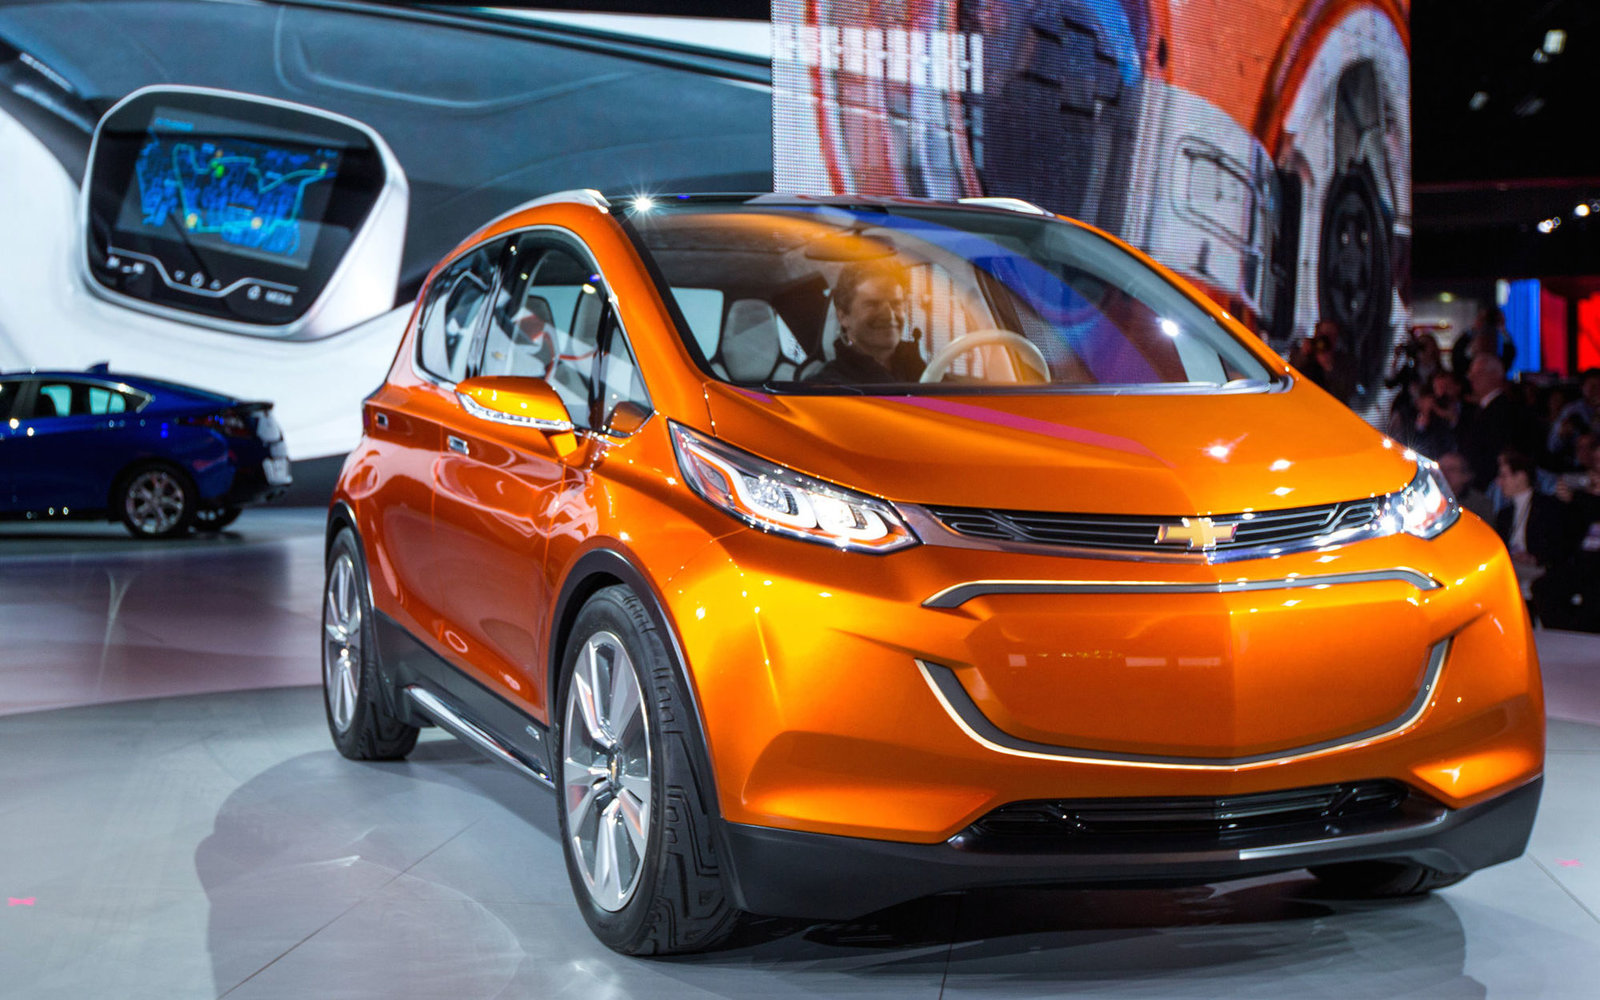 Chevy Bolt Long Range EV